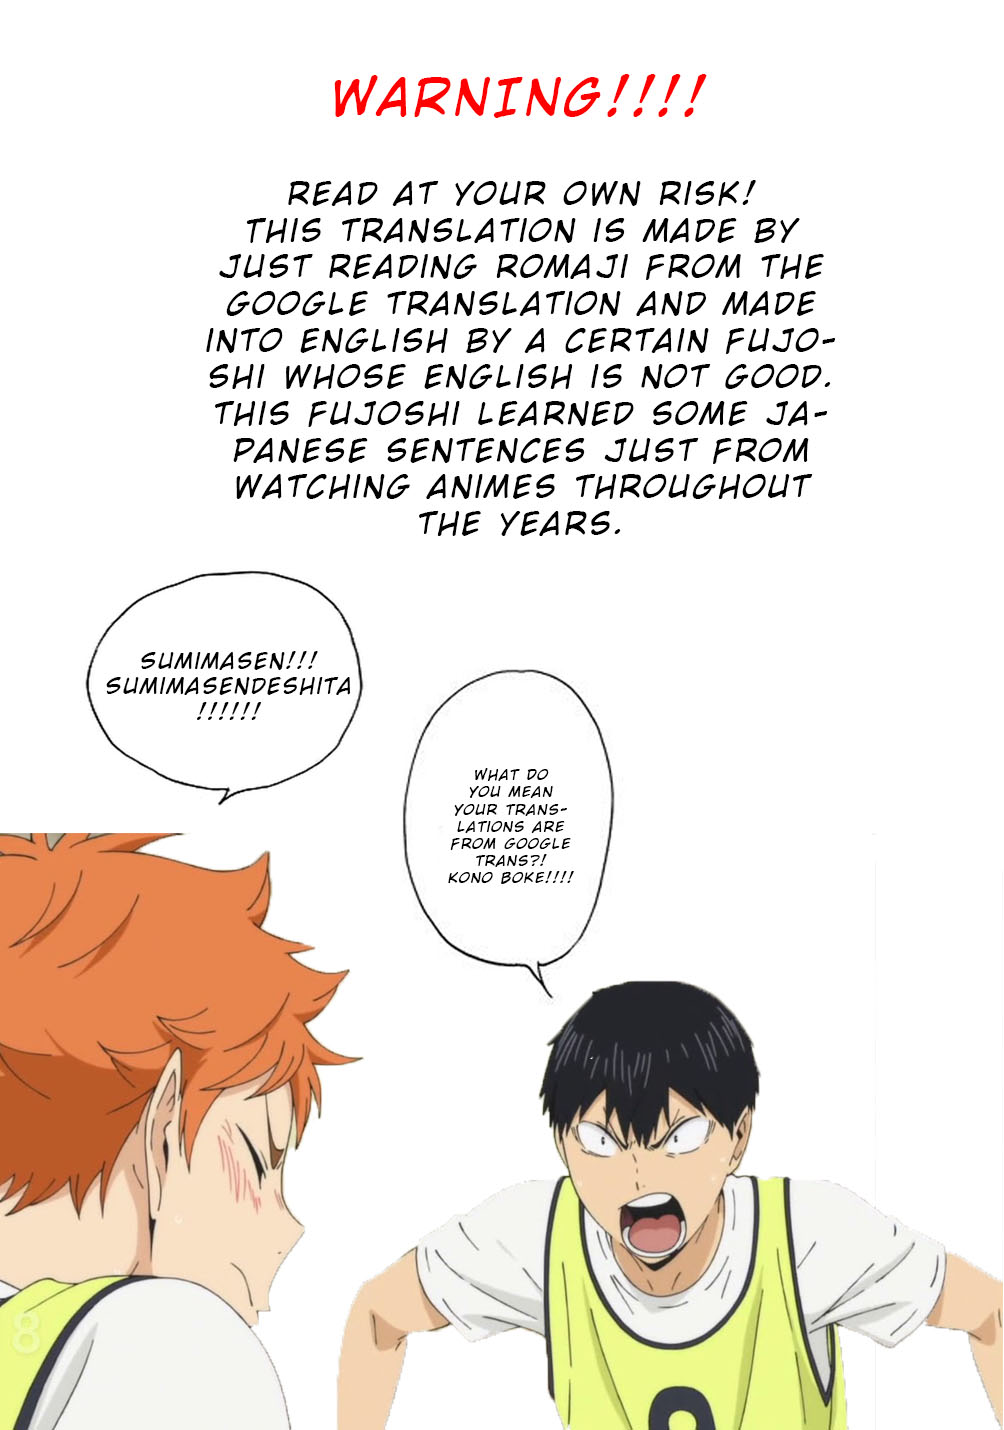 https://img2.nineanime.com/comics/pic1/53/25333/560776/6cb8725e82bc3be9a1625a5e81eef6ee.jpg Page 1